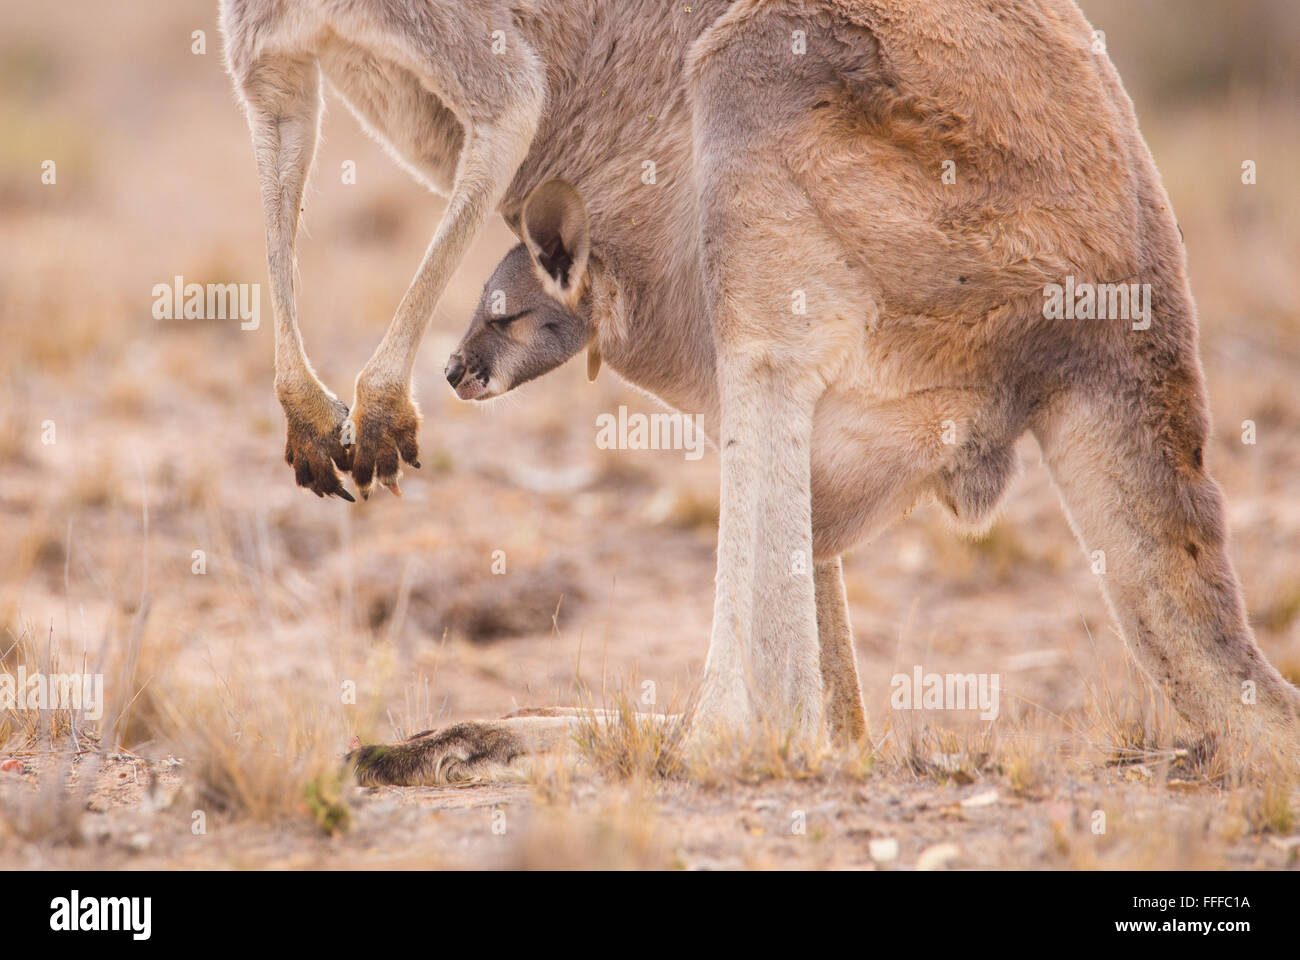 Female Red Kangaroo (Macropus rufus) with young joey in pouch,  outback Queensland, Australia - Stock Image